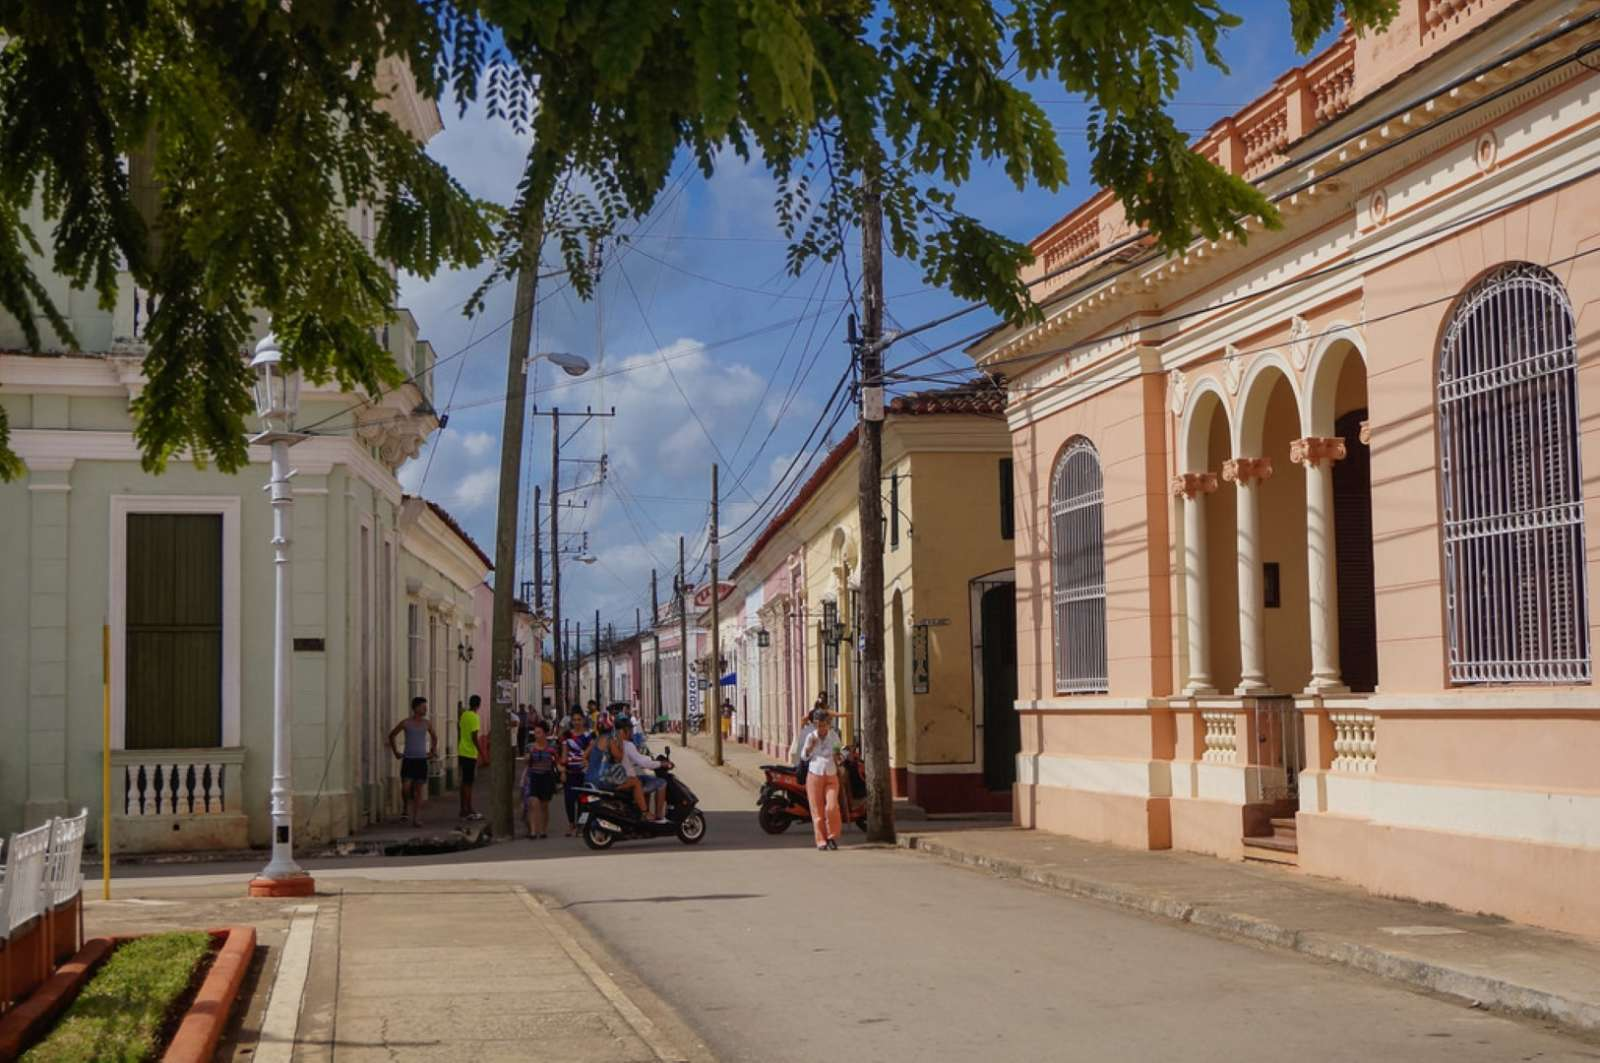 A typical street in Remedios, Cuba